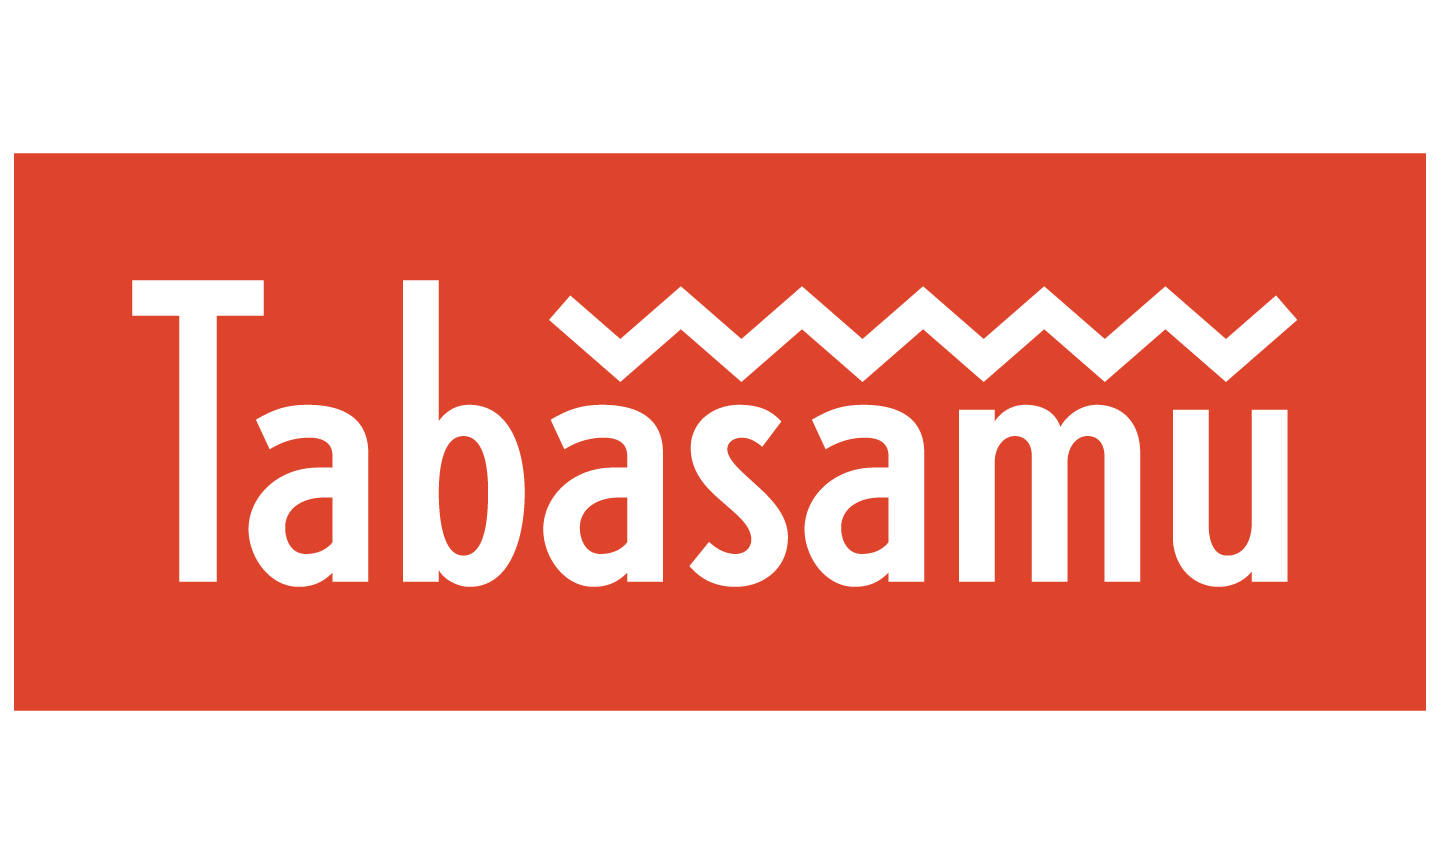 Tabasamu